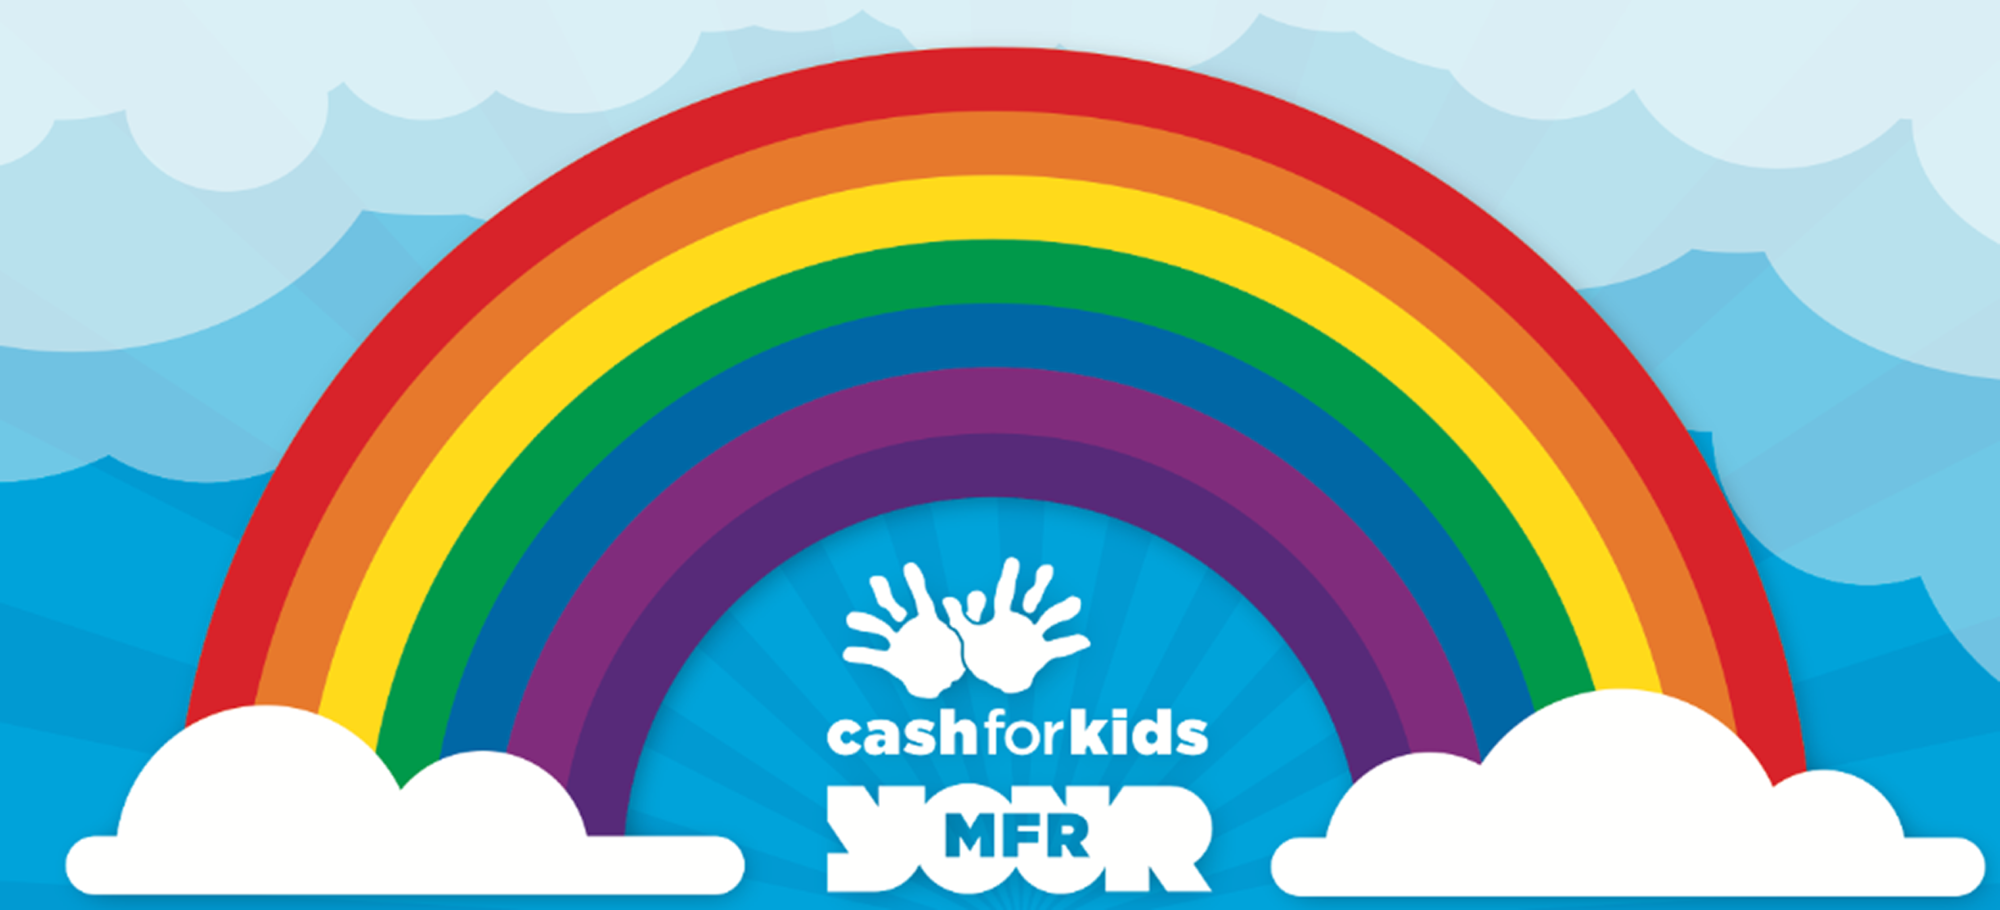 Cash-for-Kids-MFR-logo-and-rainbow.png